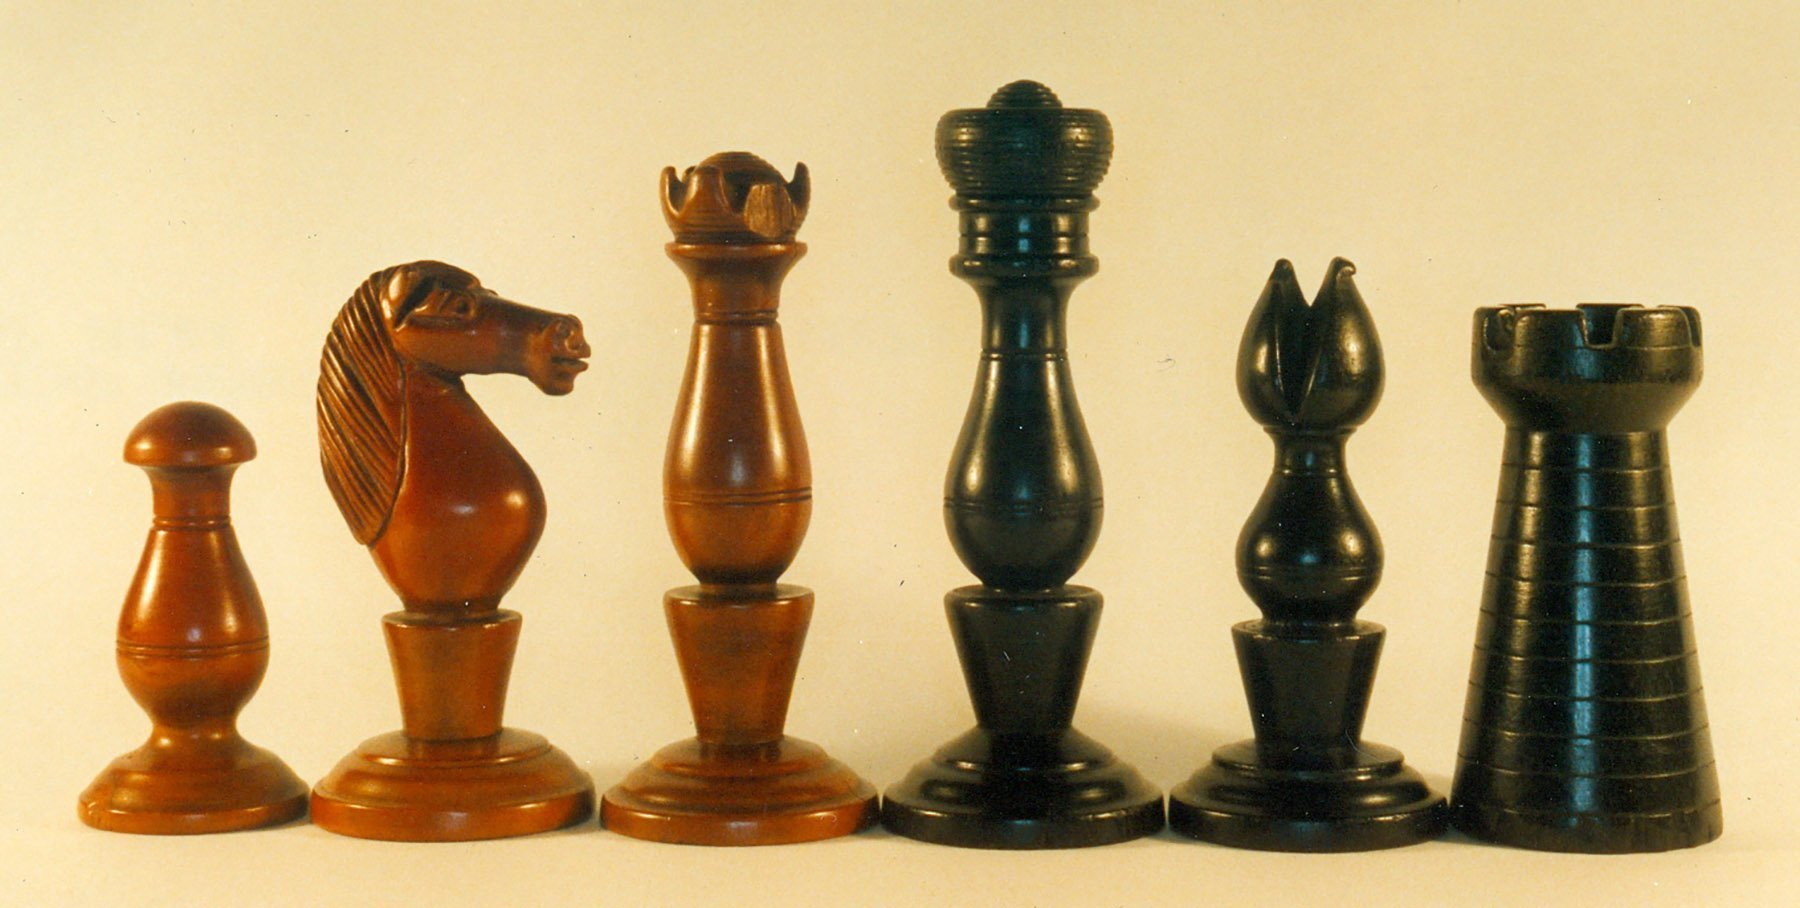 Jaques lund antique ivory chess set with draughts antique chess sets - Collectible chess sets ...